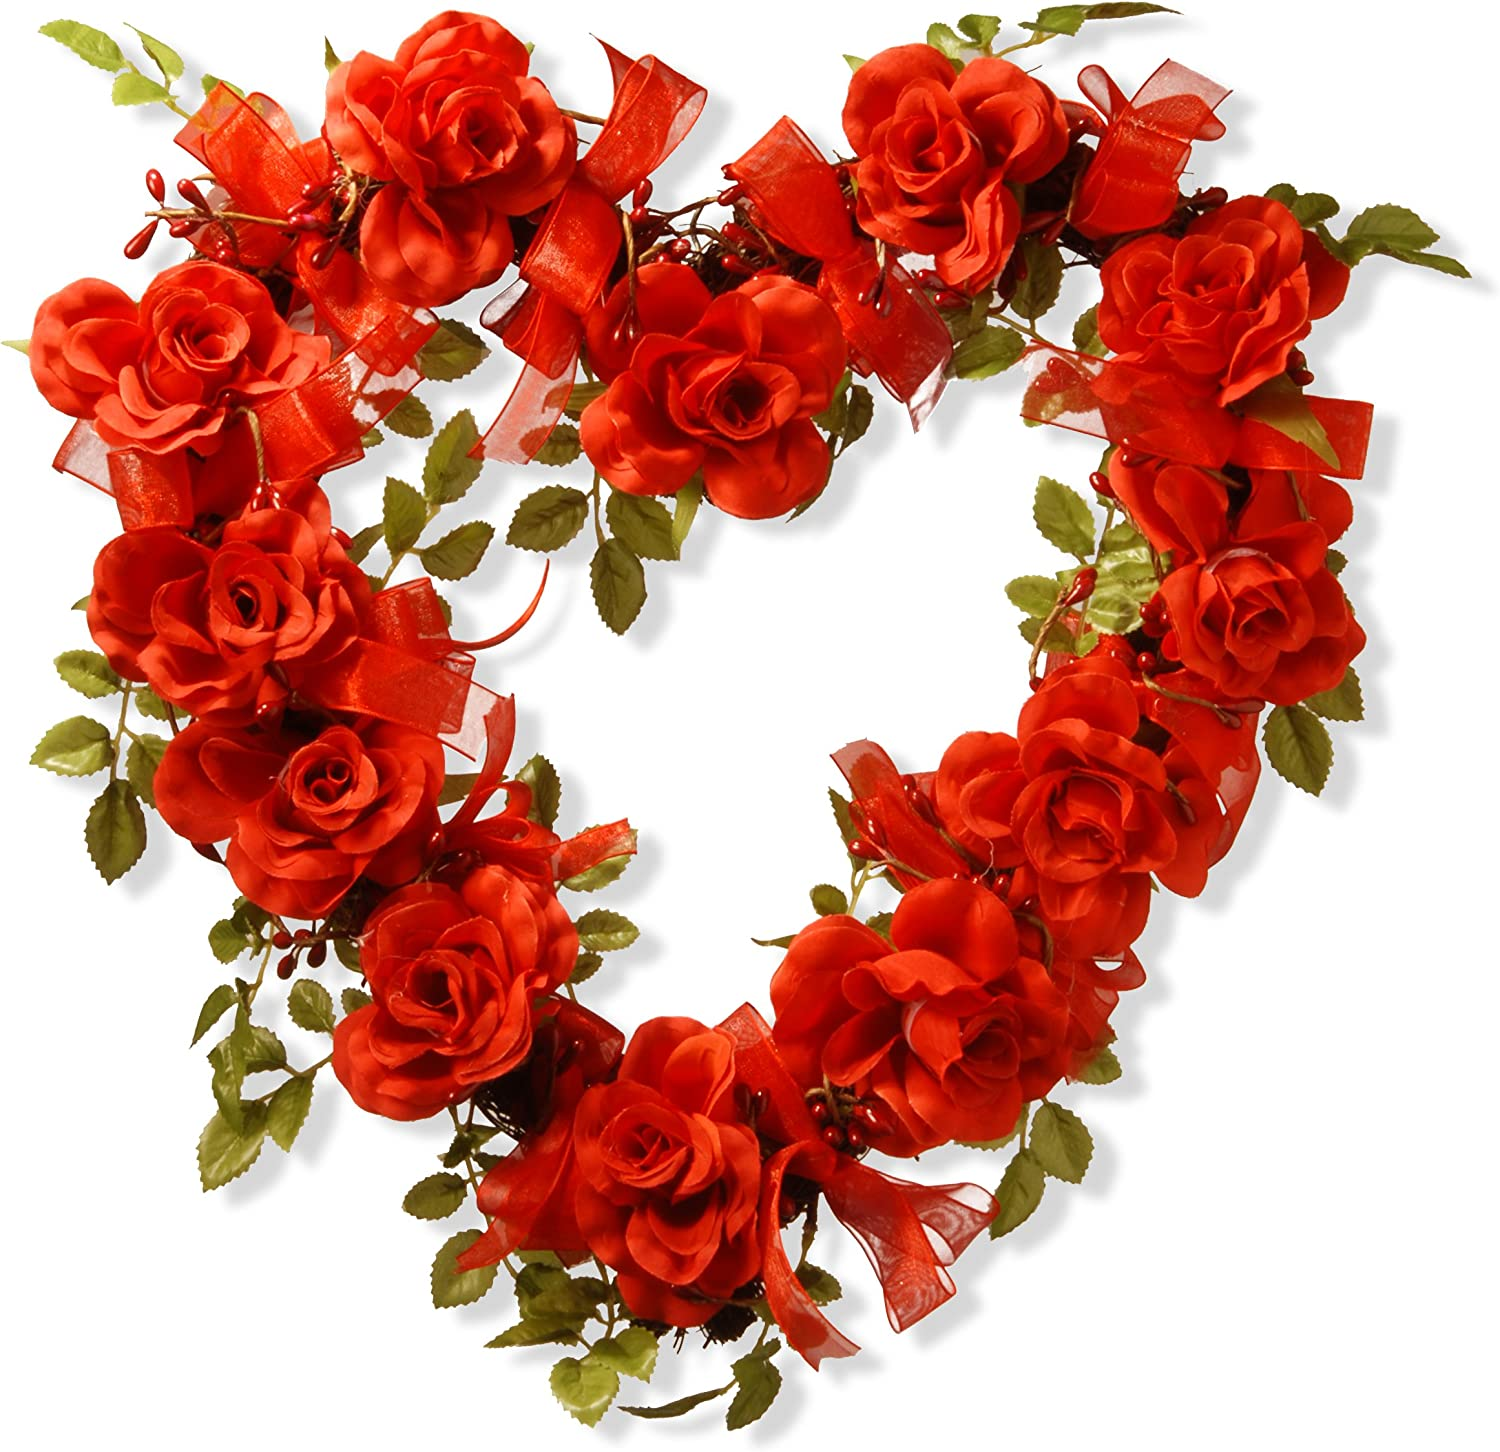 National Tree 16 Inch Valentine Heart Wood Wreath with Red Roses and Bows (RAV-15531AX16)